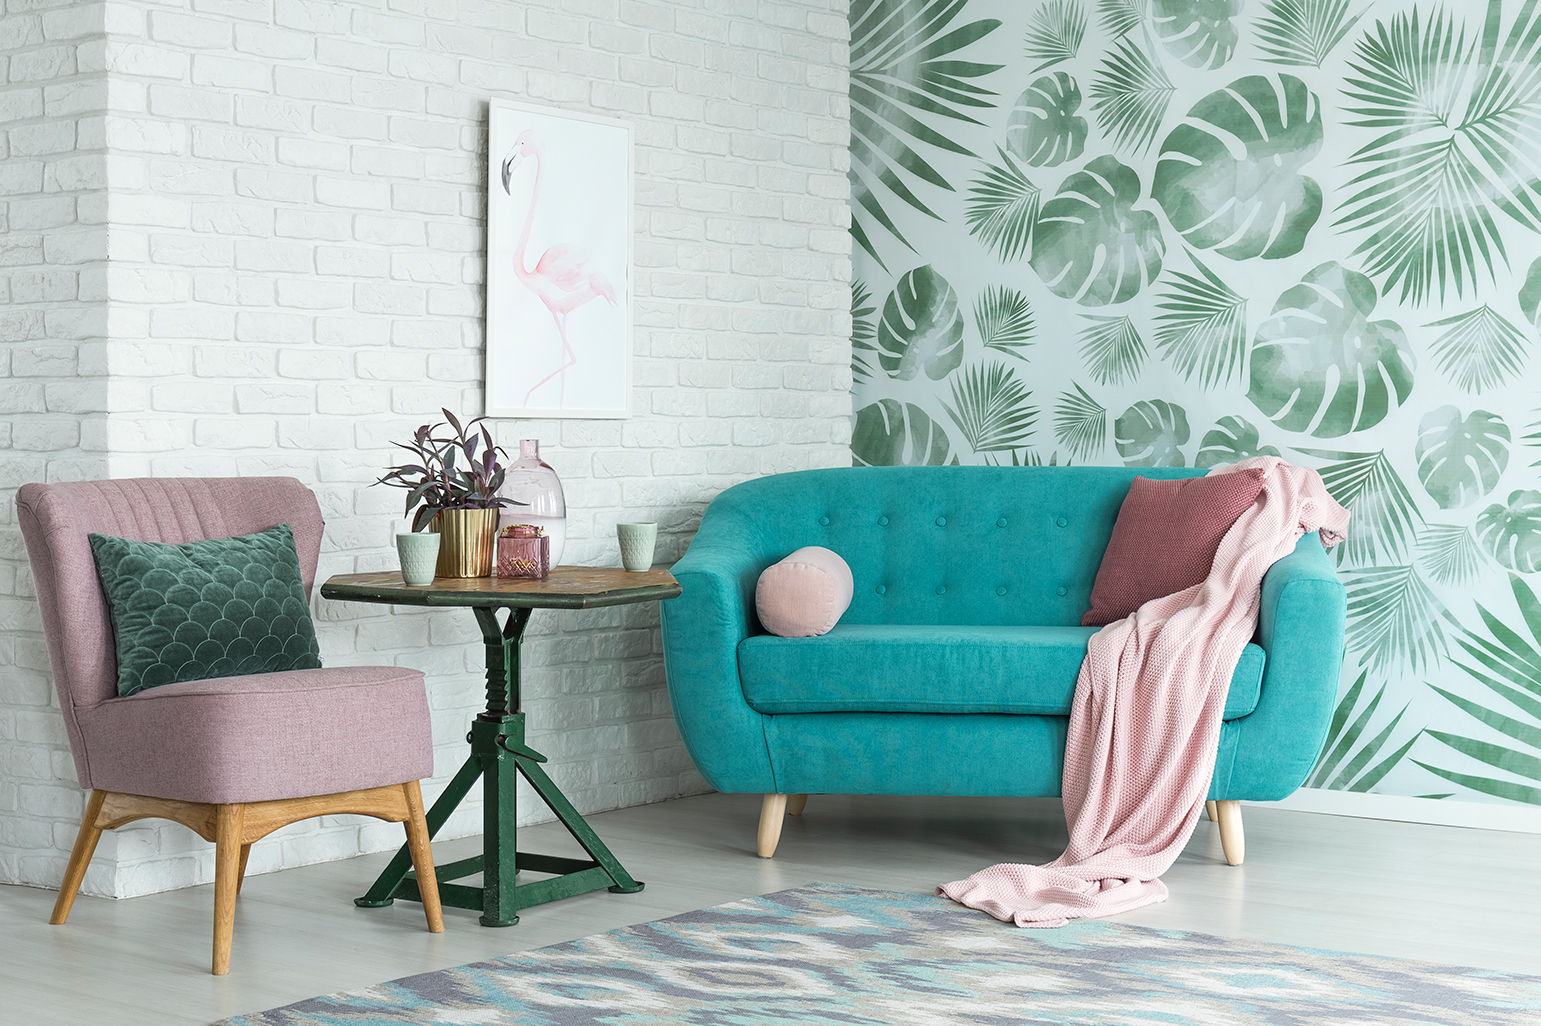 a tropical leaves wallpaper in a living room